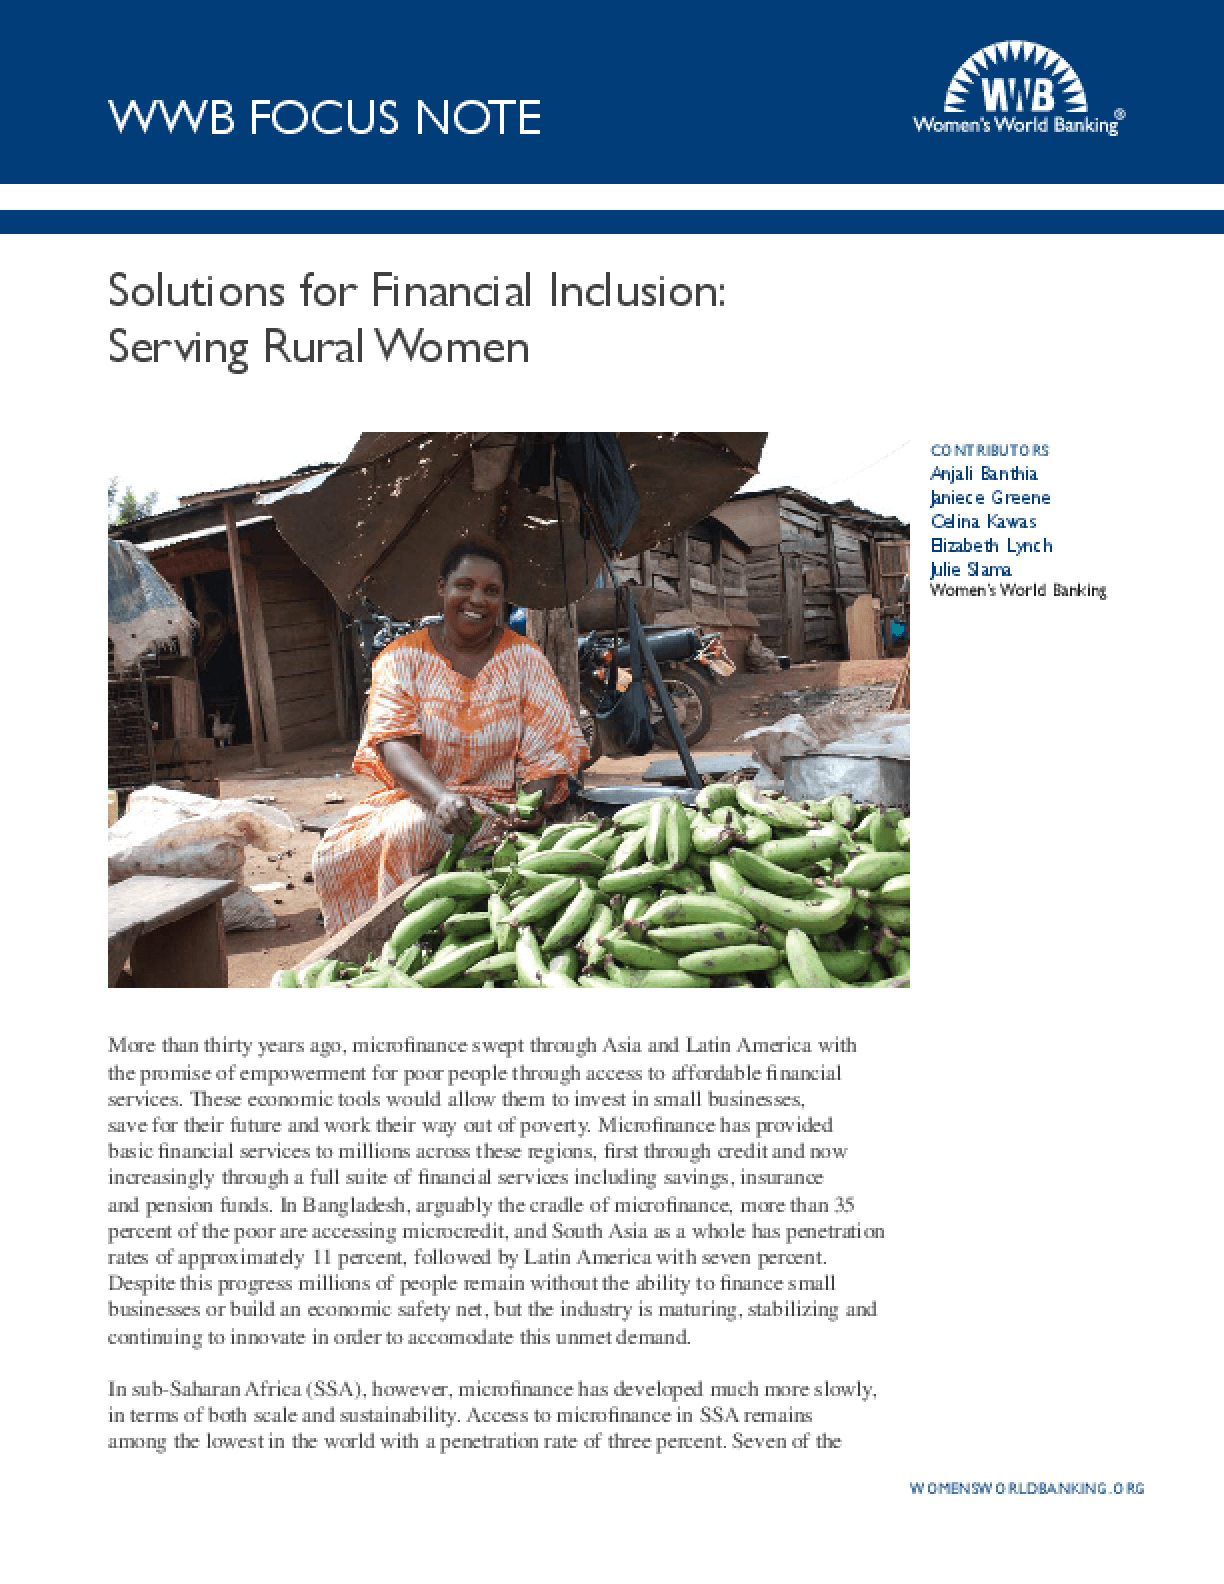 Solutions for Financial Inclusion: Serving Rural Women